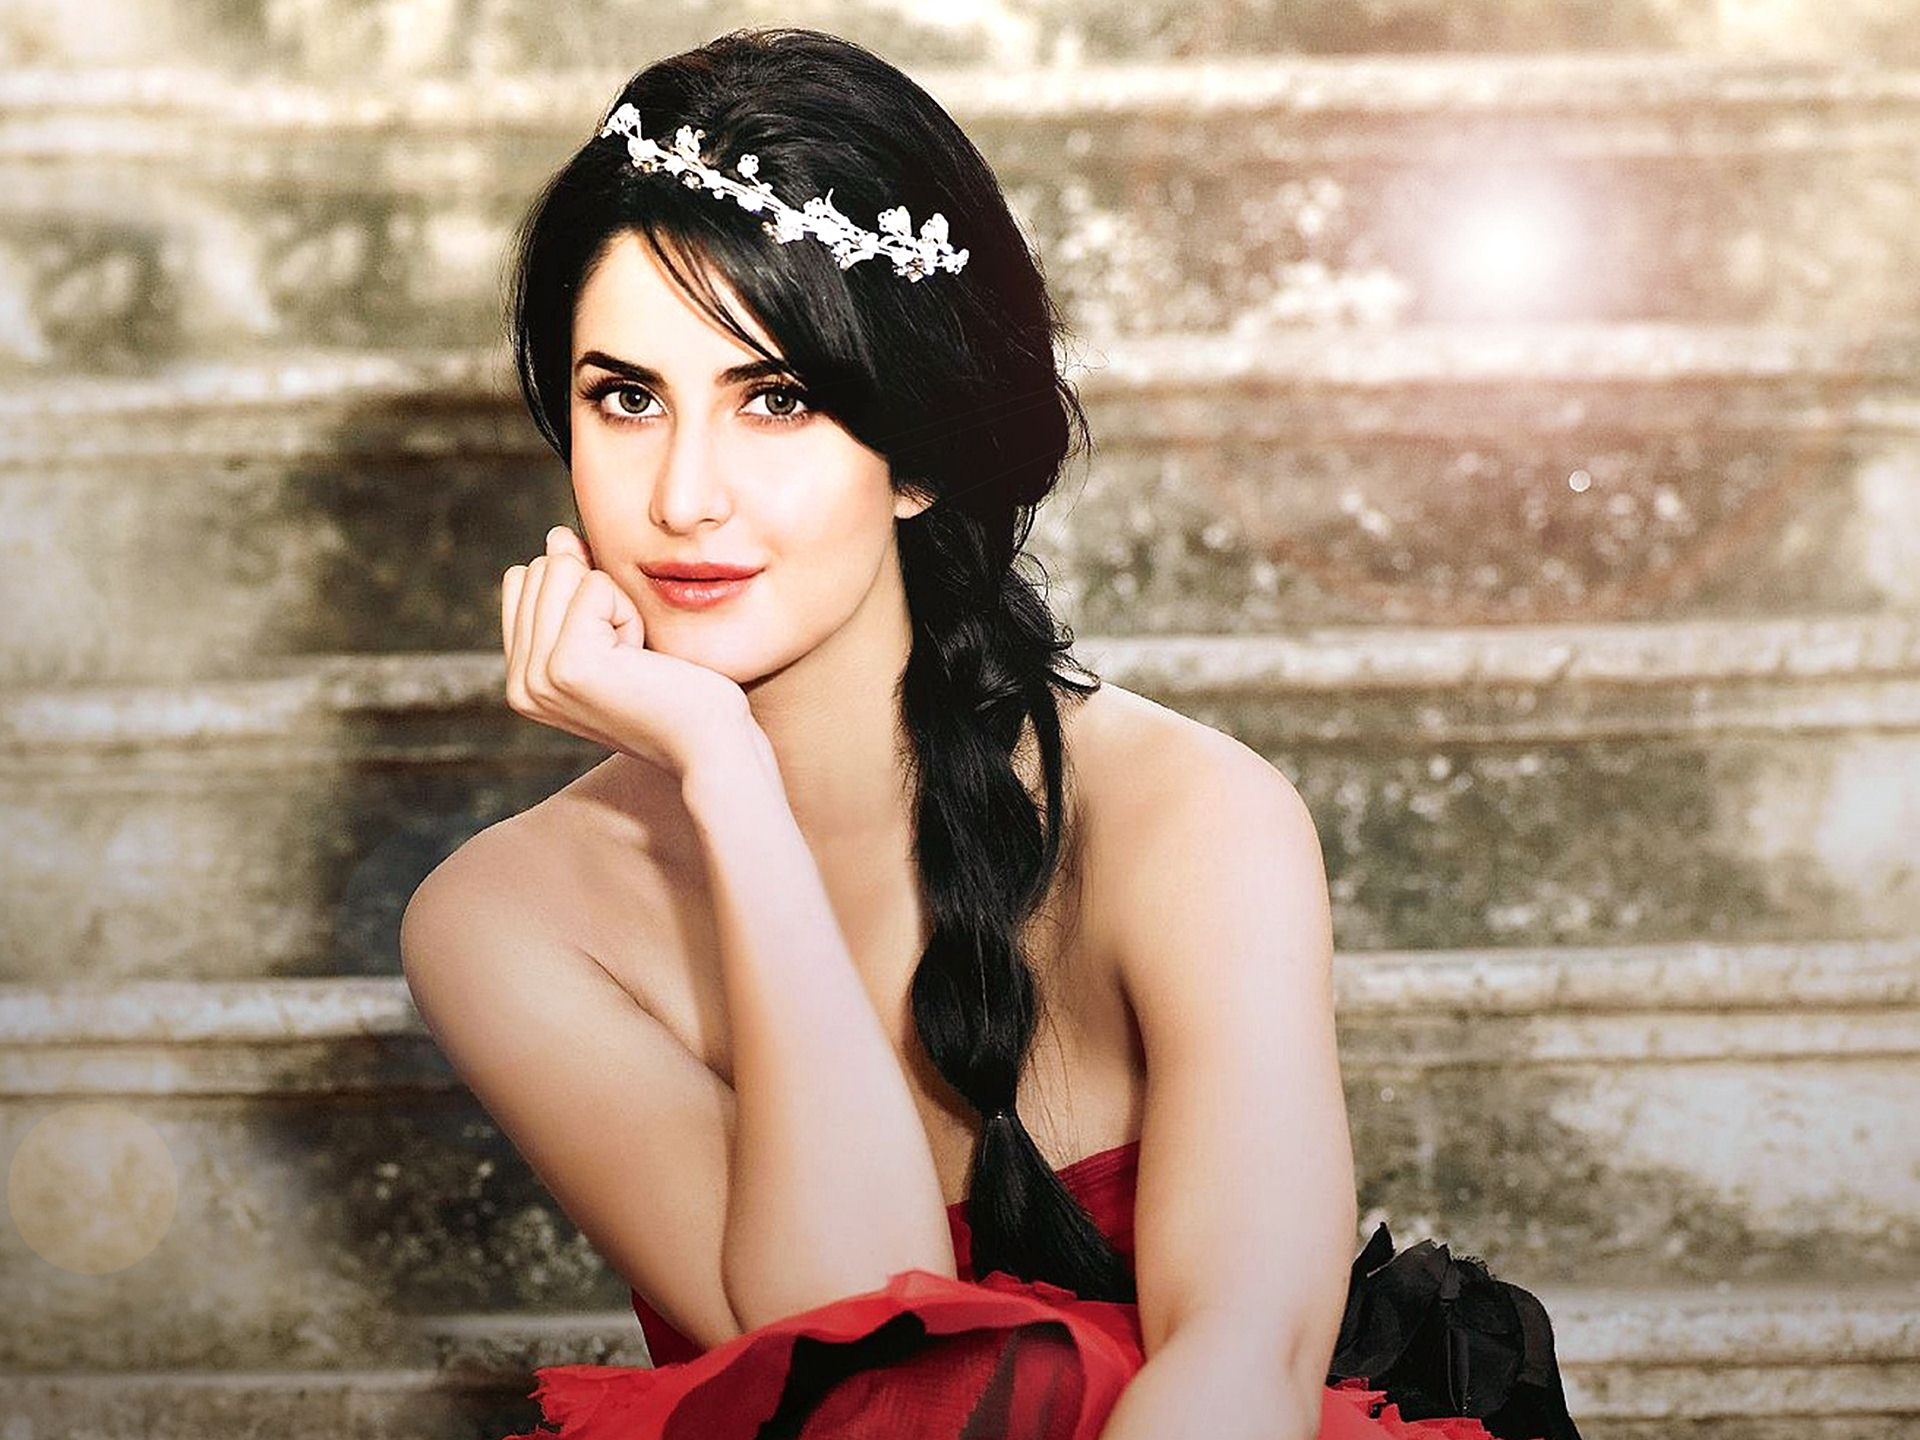 In Quotes - Katrina Kaif's take on Love, Life & Bollywood